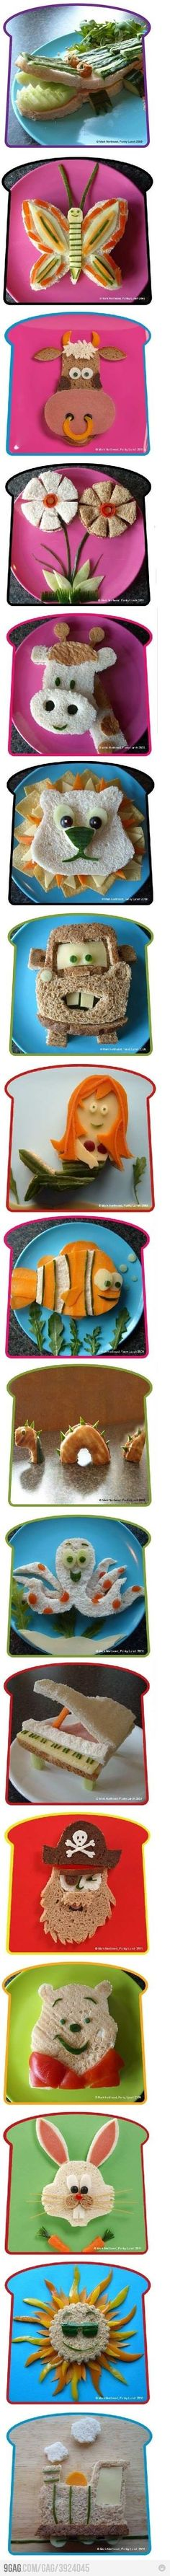 Cute animal foods for kids! Kind-of makes me want grandkids so I can try them out:)